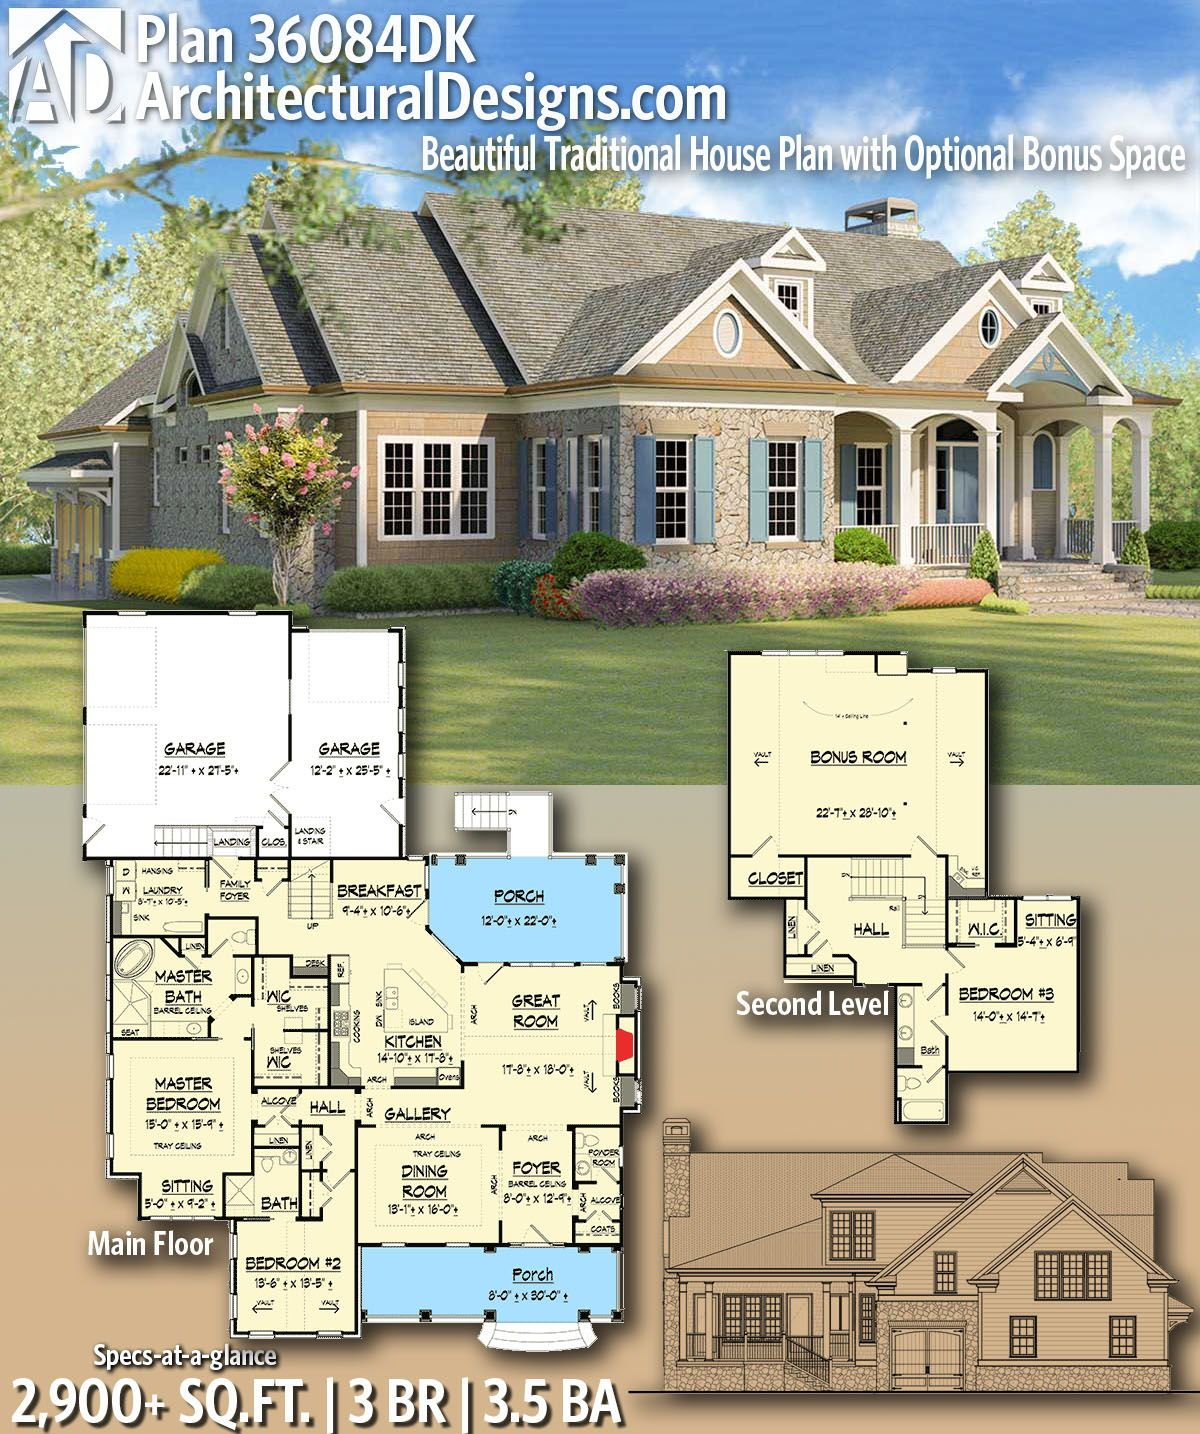 Architectural Designs Home Plan 36084dk Gives You 3 Bedrooms 3 5 Baths And 2 900 Sq Ft Ready When You Ar House Plans Dream House Plans Diy Tiny House Plans